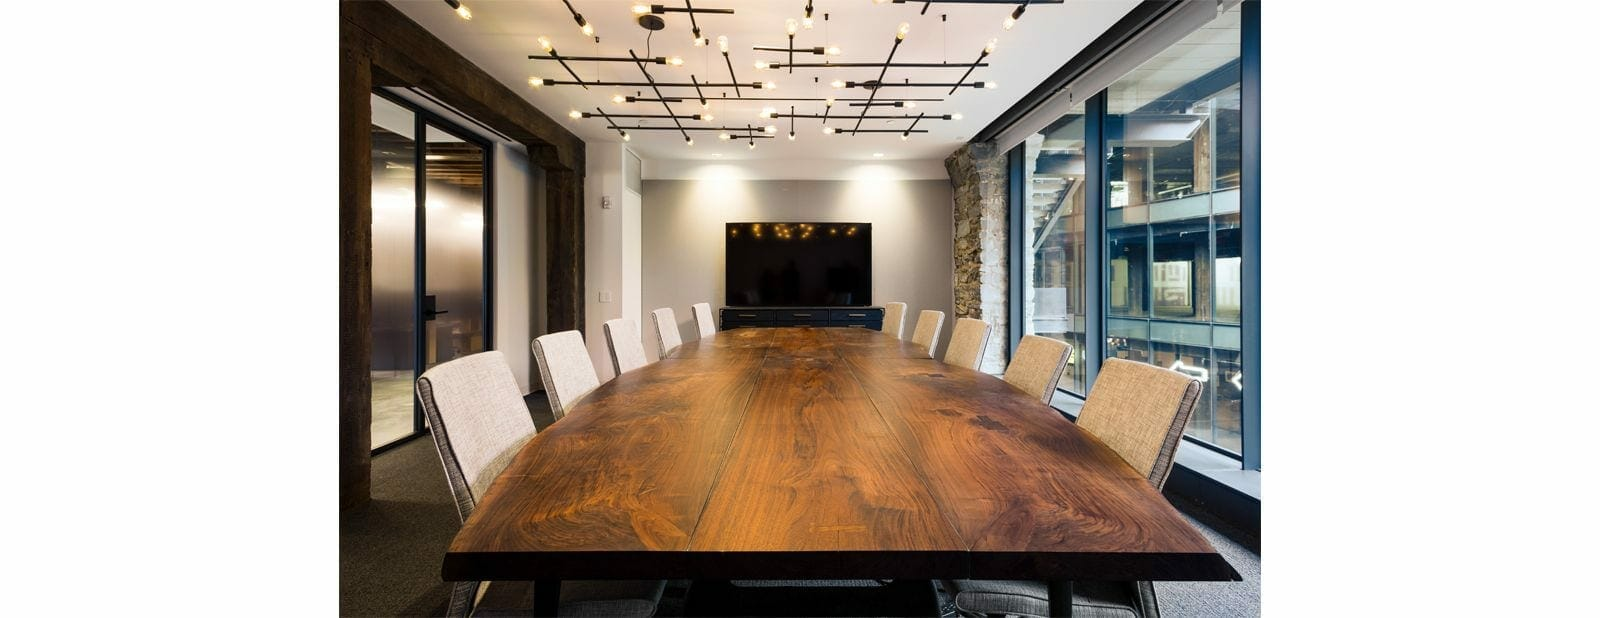 empire office conference table 2